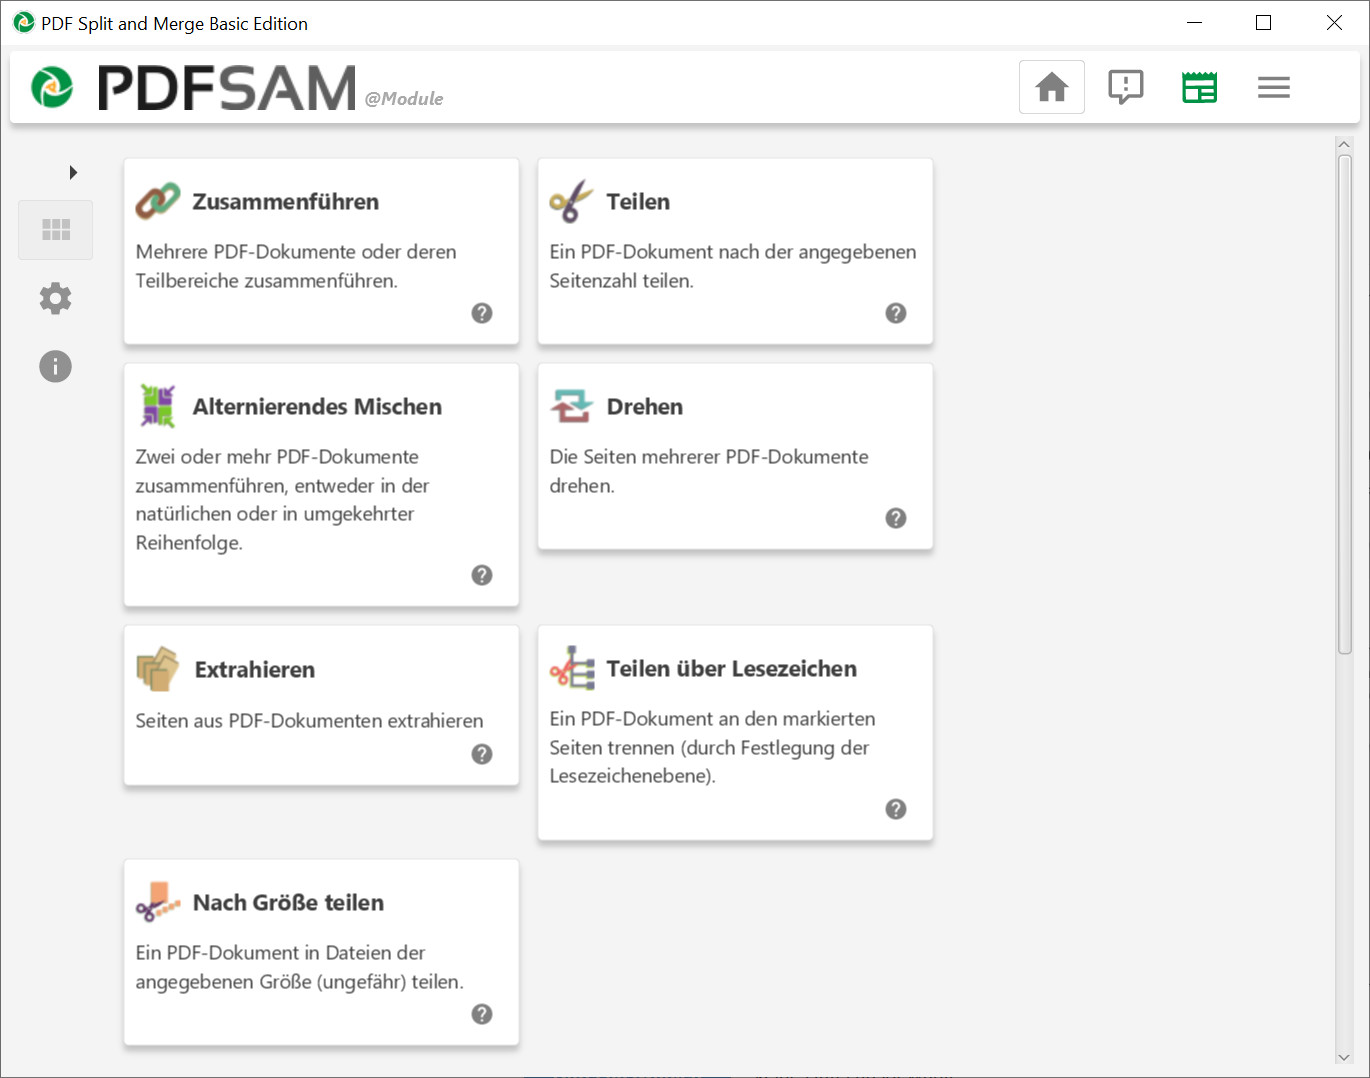 Screenshot 1 - PDFsam (PDF Split and Merge)